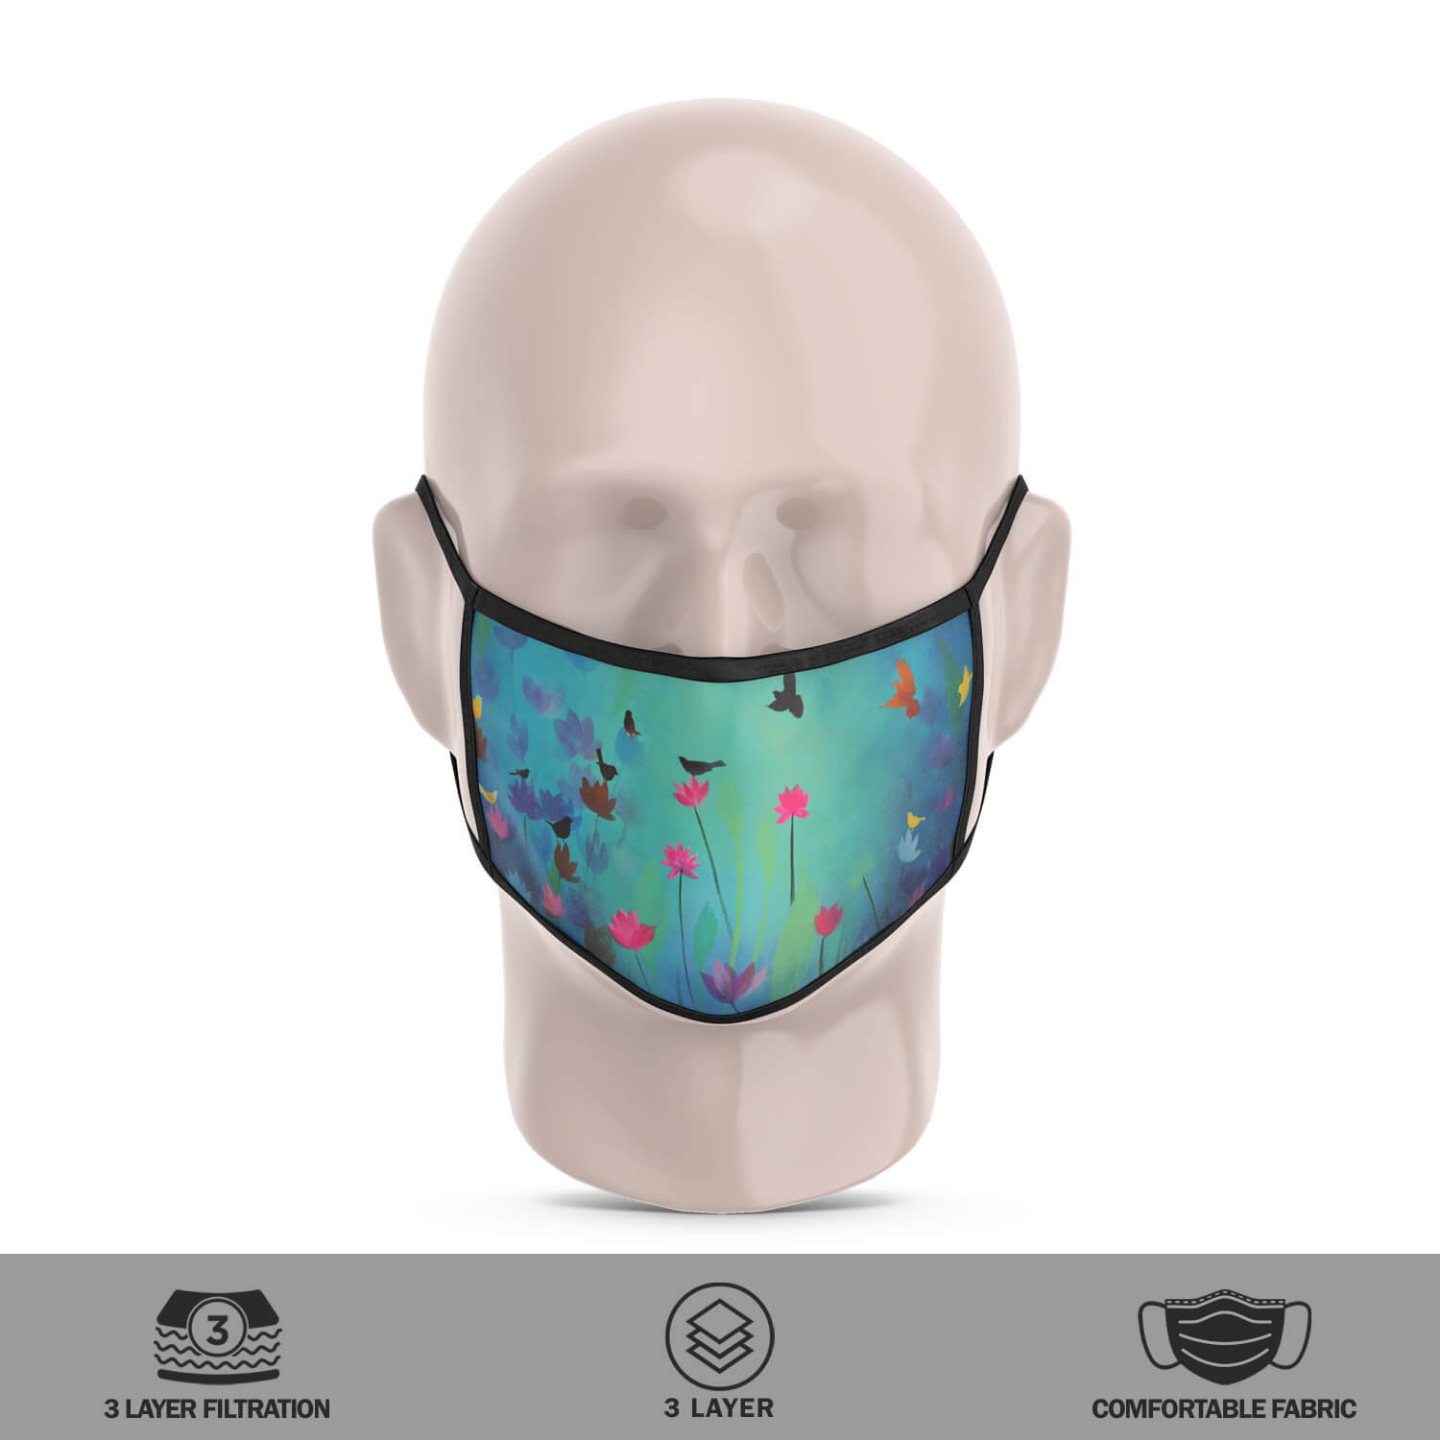 Song of the Song Reusable Face Mask - Priyanka Waghela